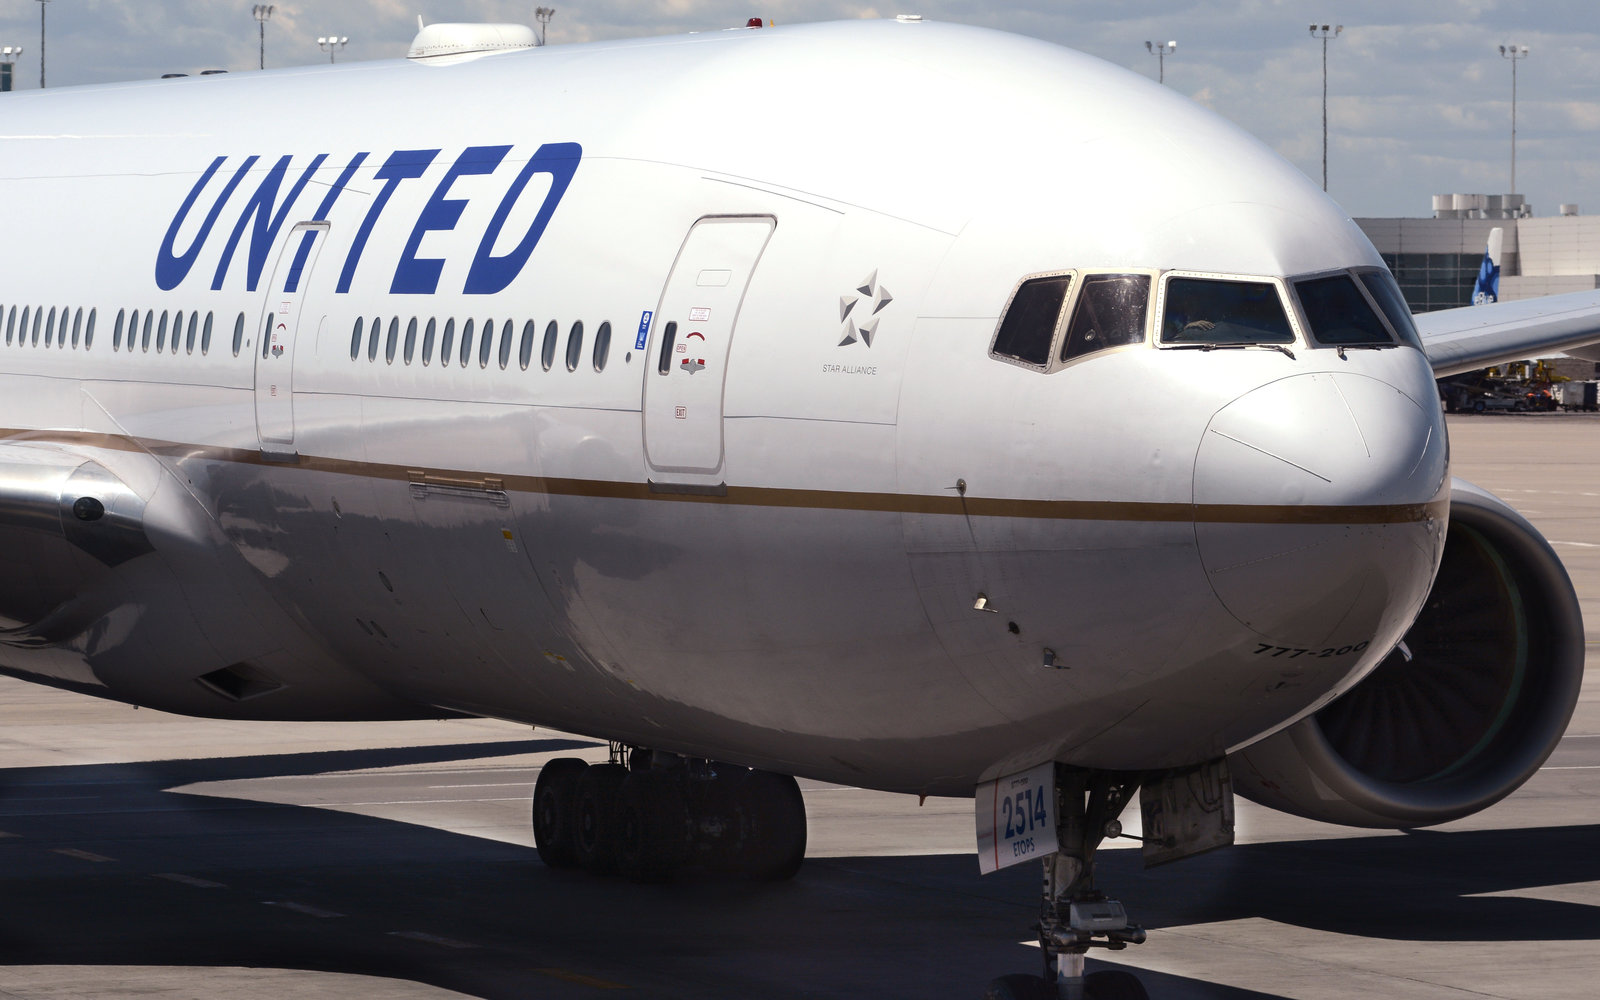 Inside United Airlines' option to buy a flight now and pay for it overtime